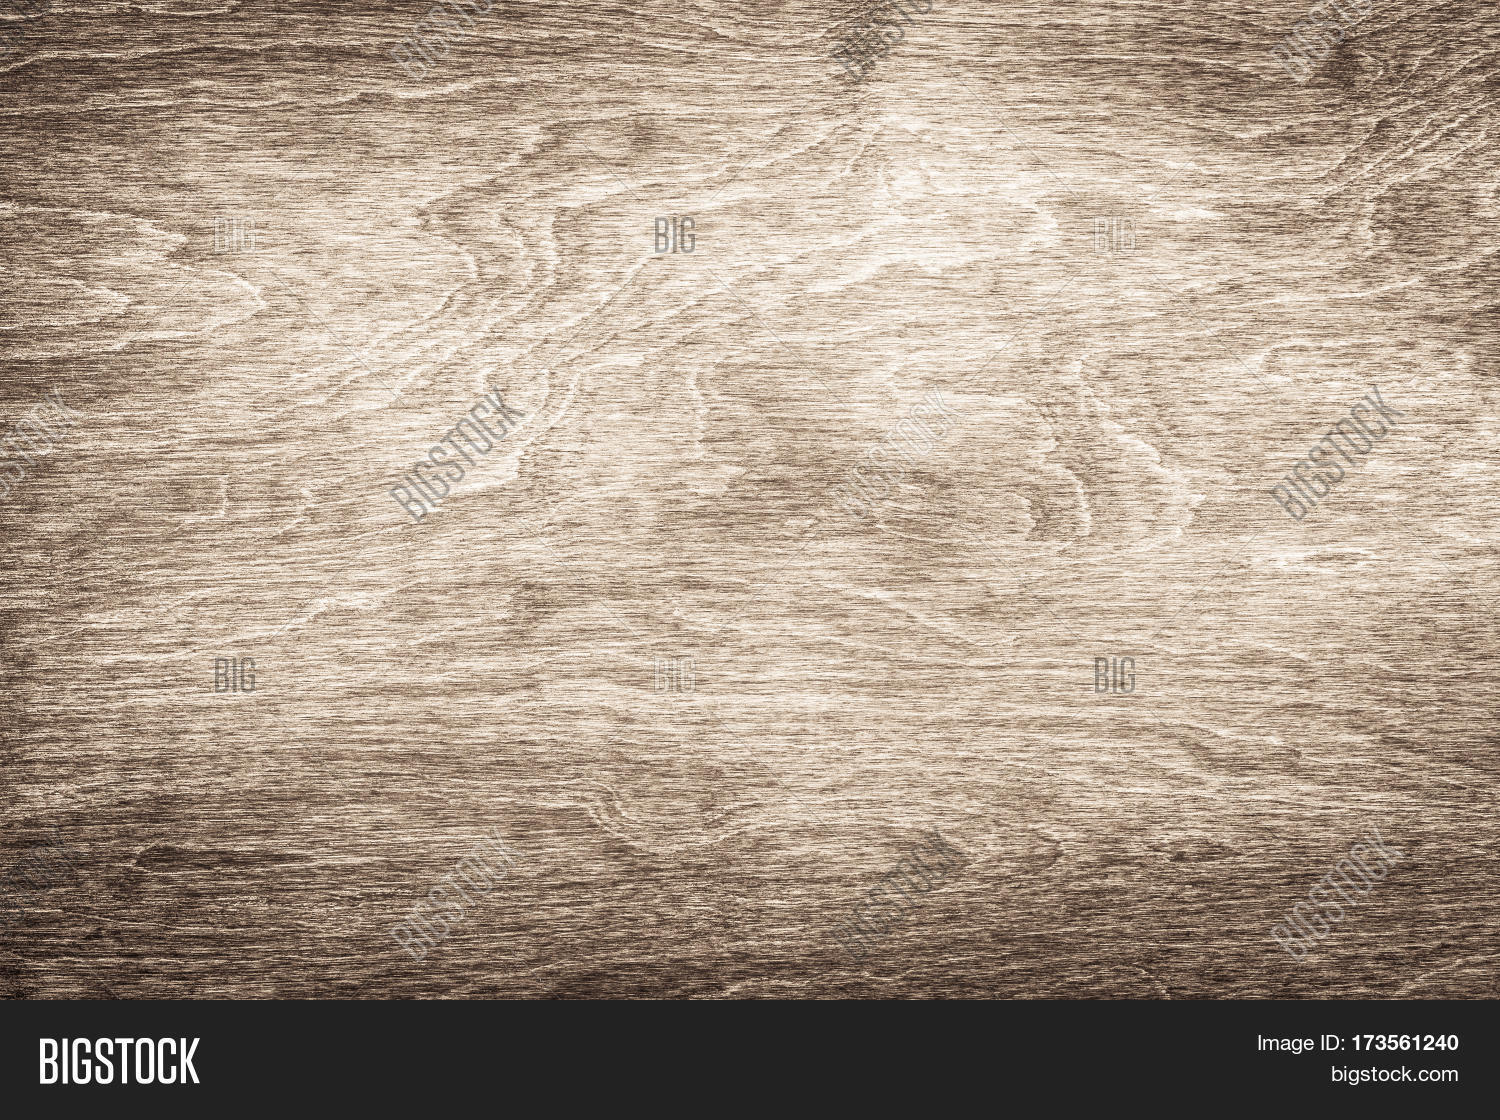 Wood Table Surface Top View Image Amp Photo